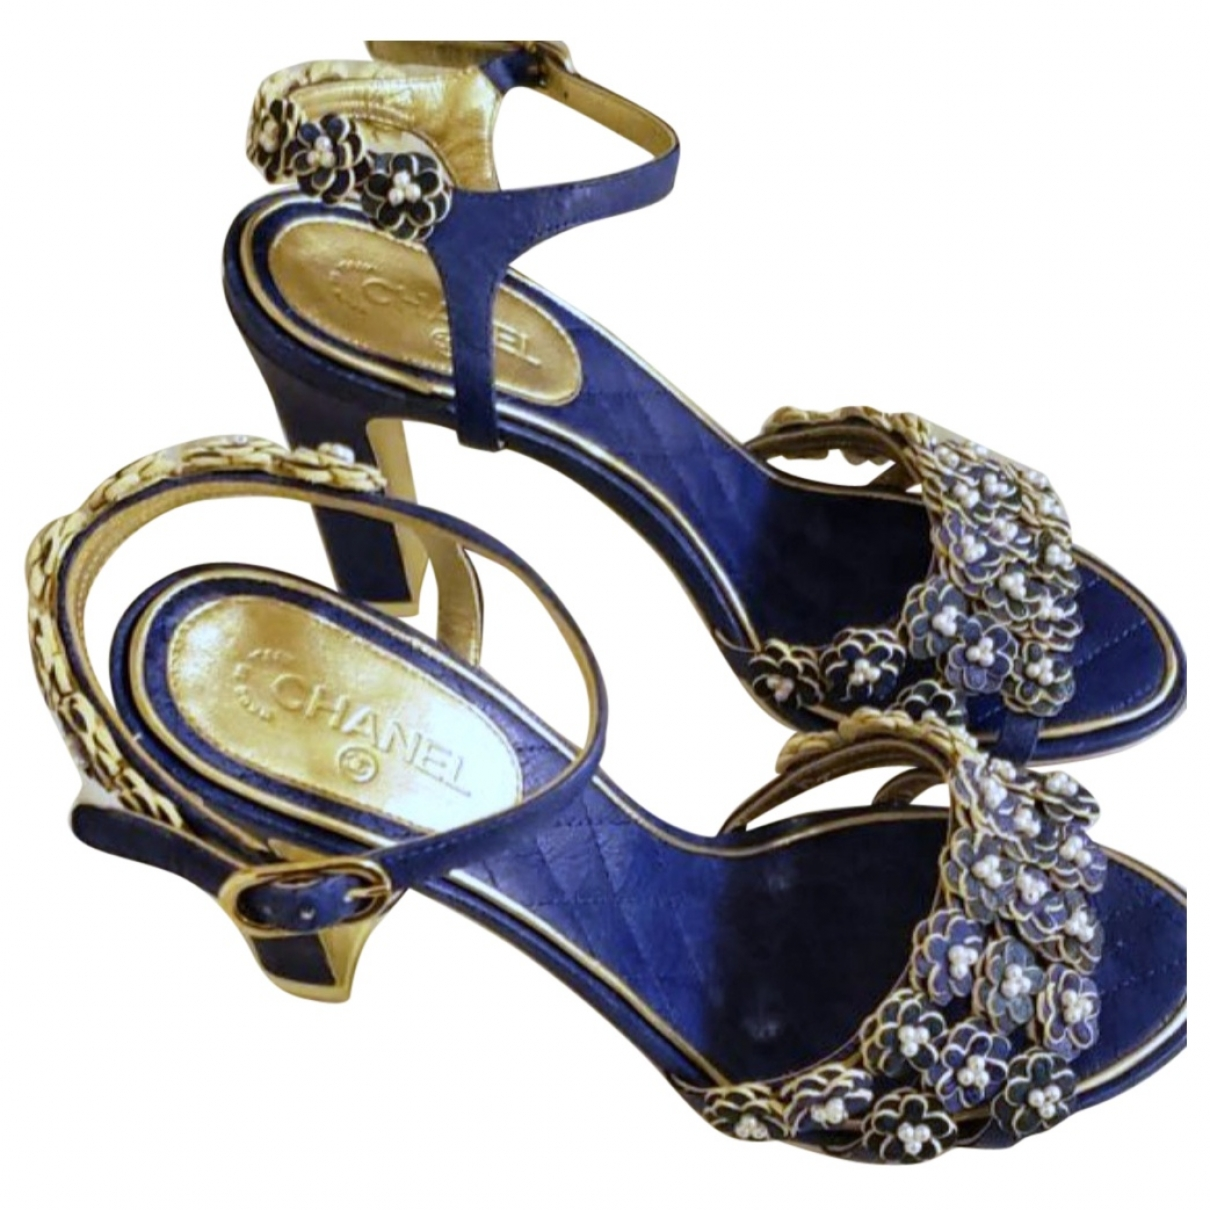 Chanel \N Blue Leather Sandals for Women 36.5 EU